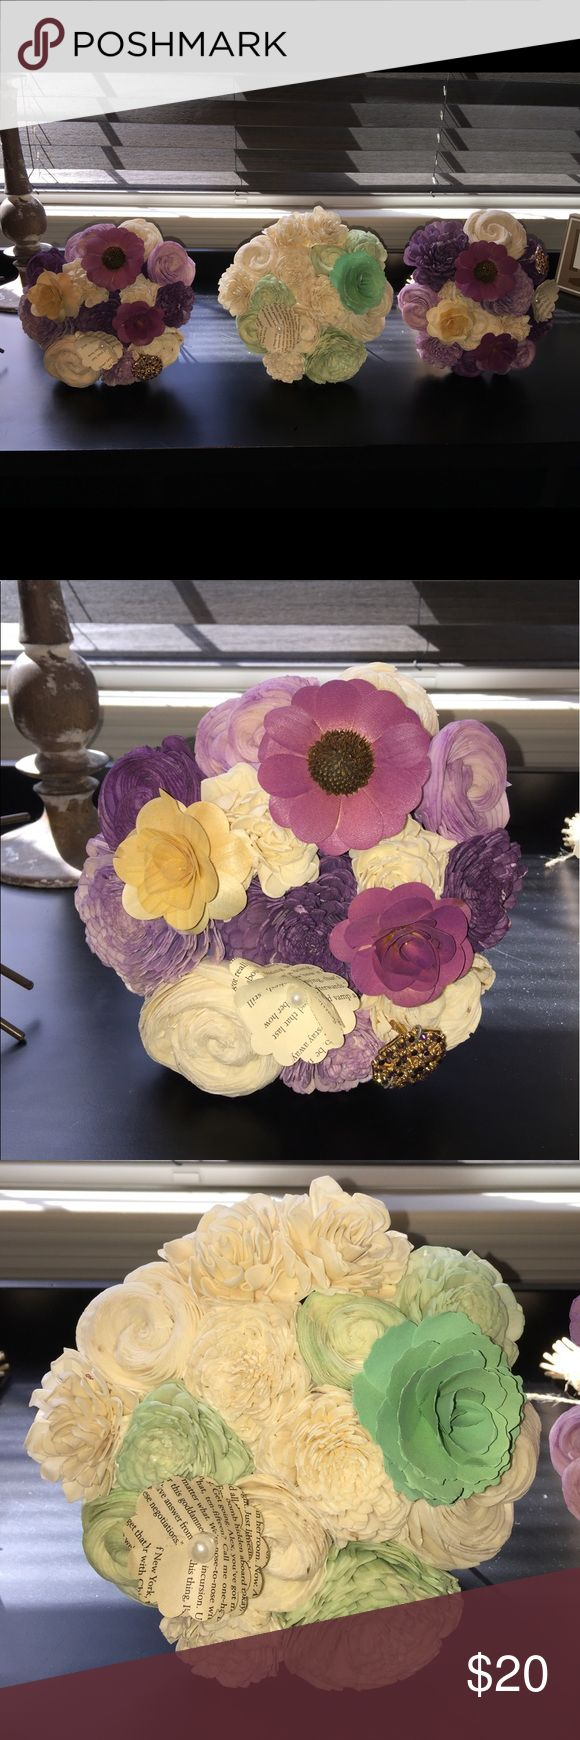 Eco Flower Bouquets Brand New never used. Smoke free home. I have 2 purple bouquets and 1 mint bouquet Eco flower Other